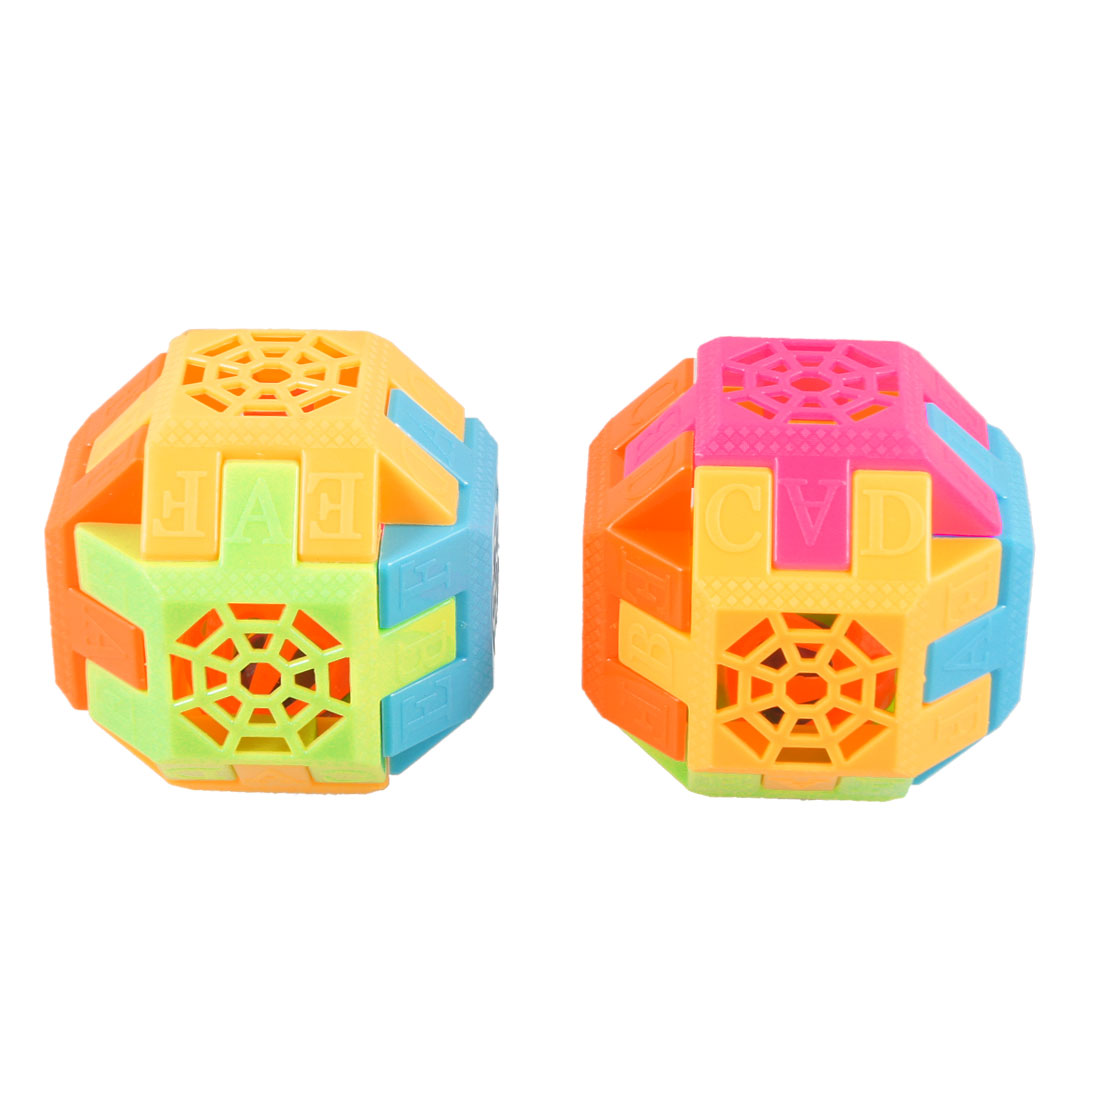 2 Pcs Multicolor Plastic Block Assembly Tinkle Bell Puzzle Ball Toy for Kids